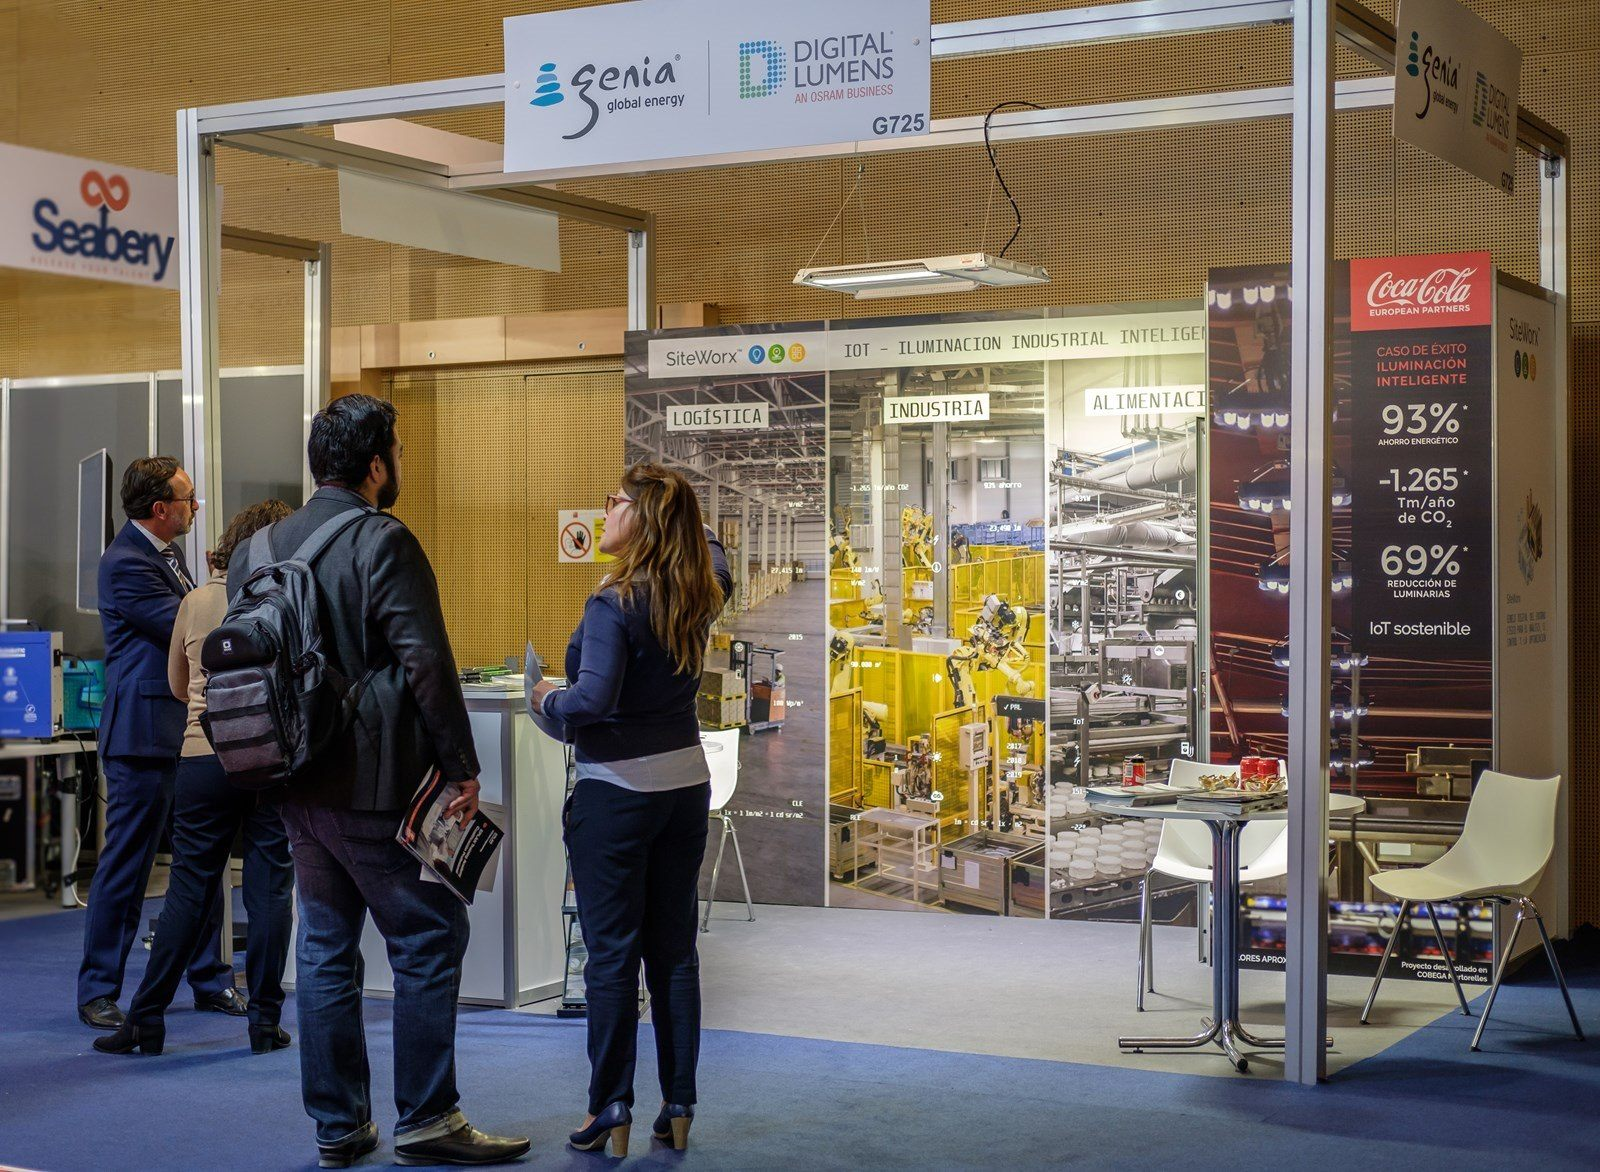 Genia Global Energy en Advanced Factories industyria 4.0